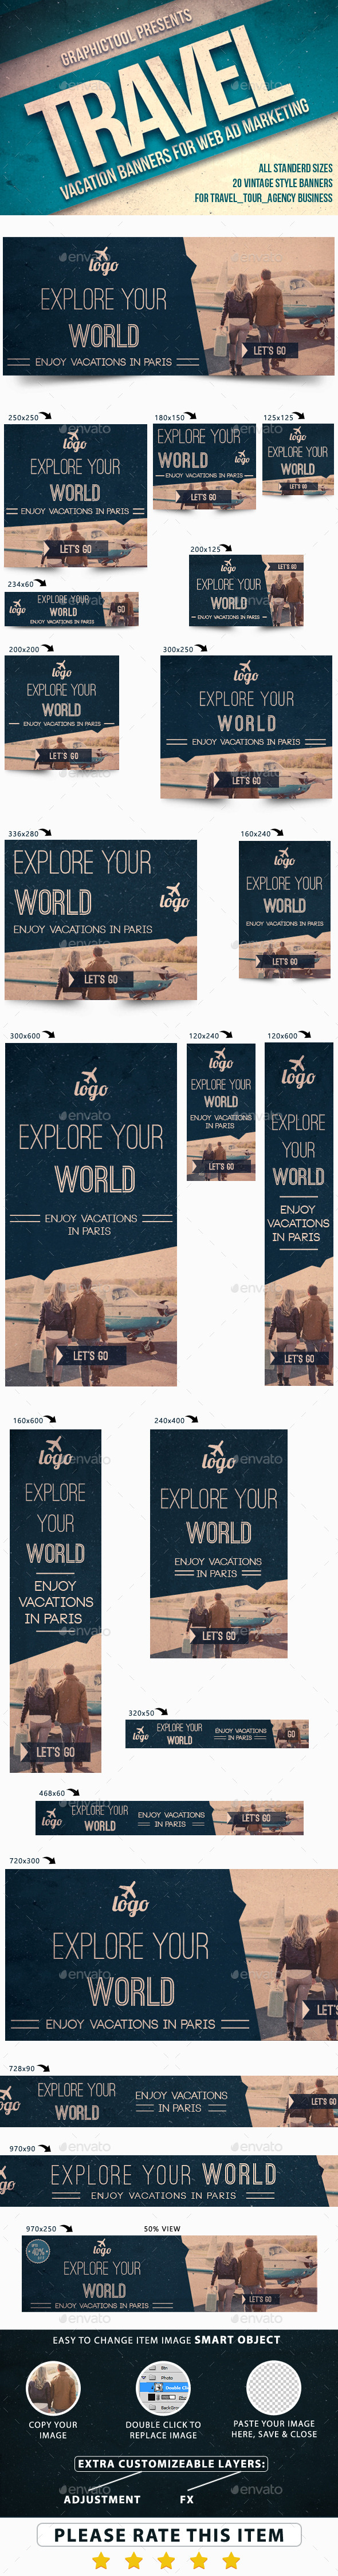 Vintage Travel Web Ad Marketing Banners - Banners & Ads Web Elements